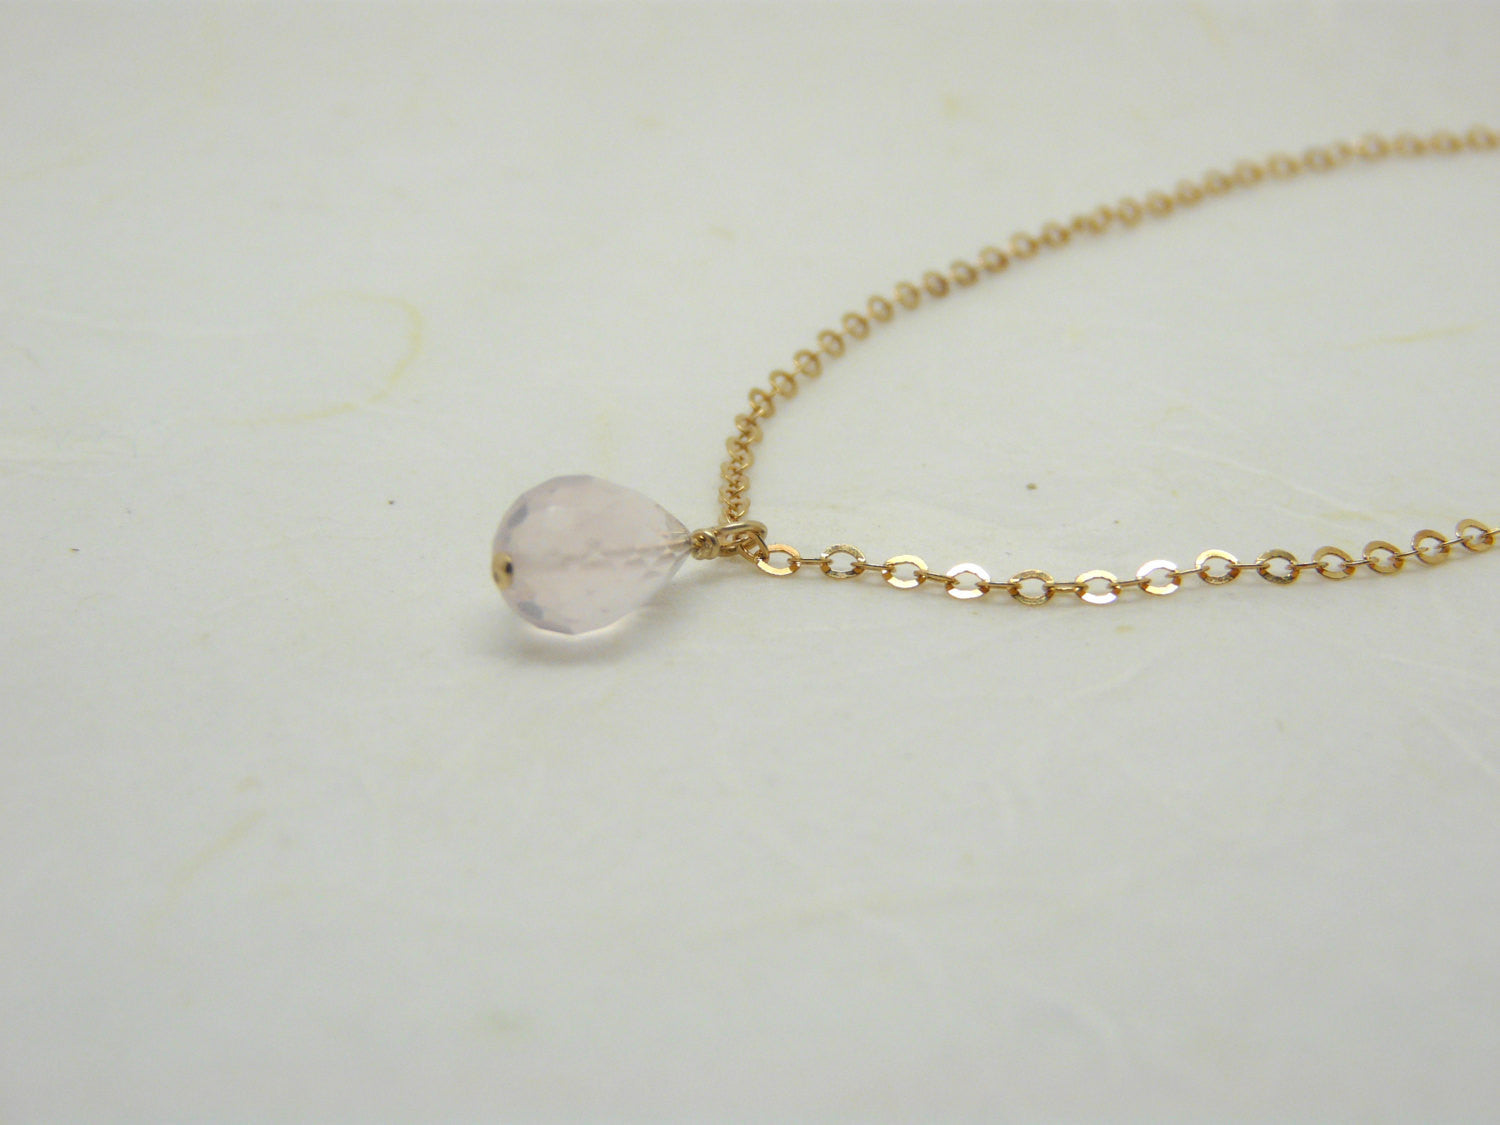 Rose quartz necklace - OpaLandJewelry